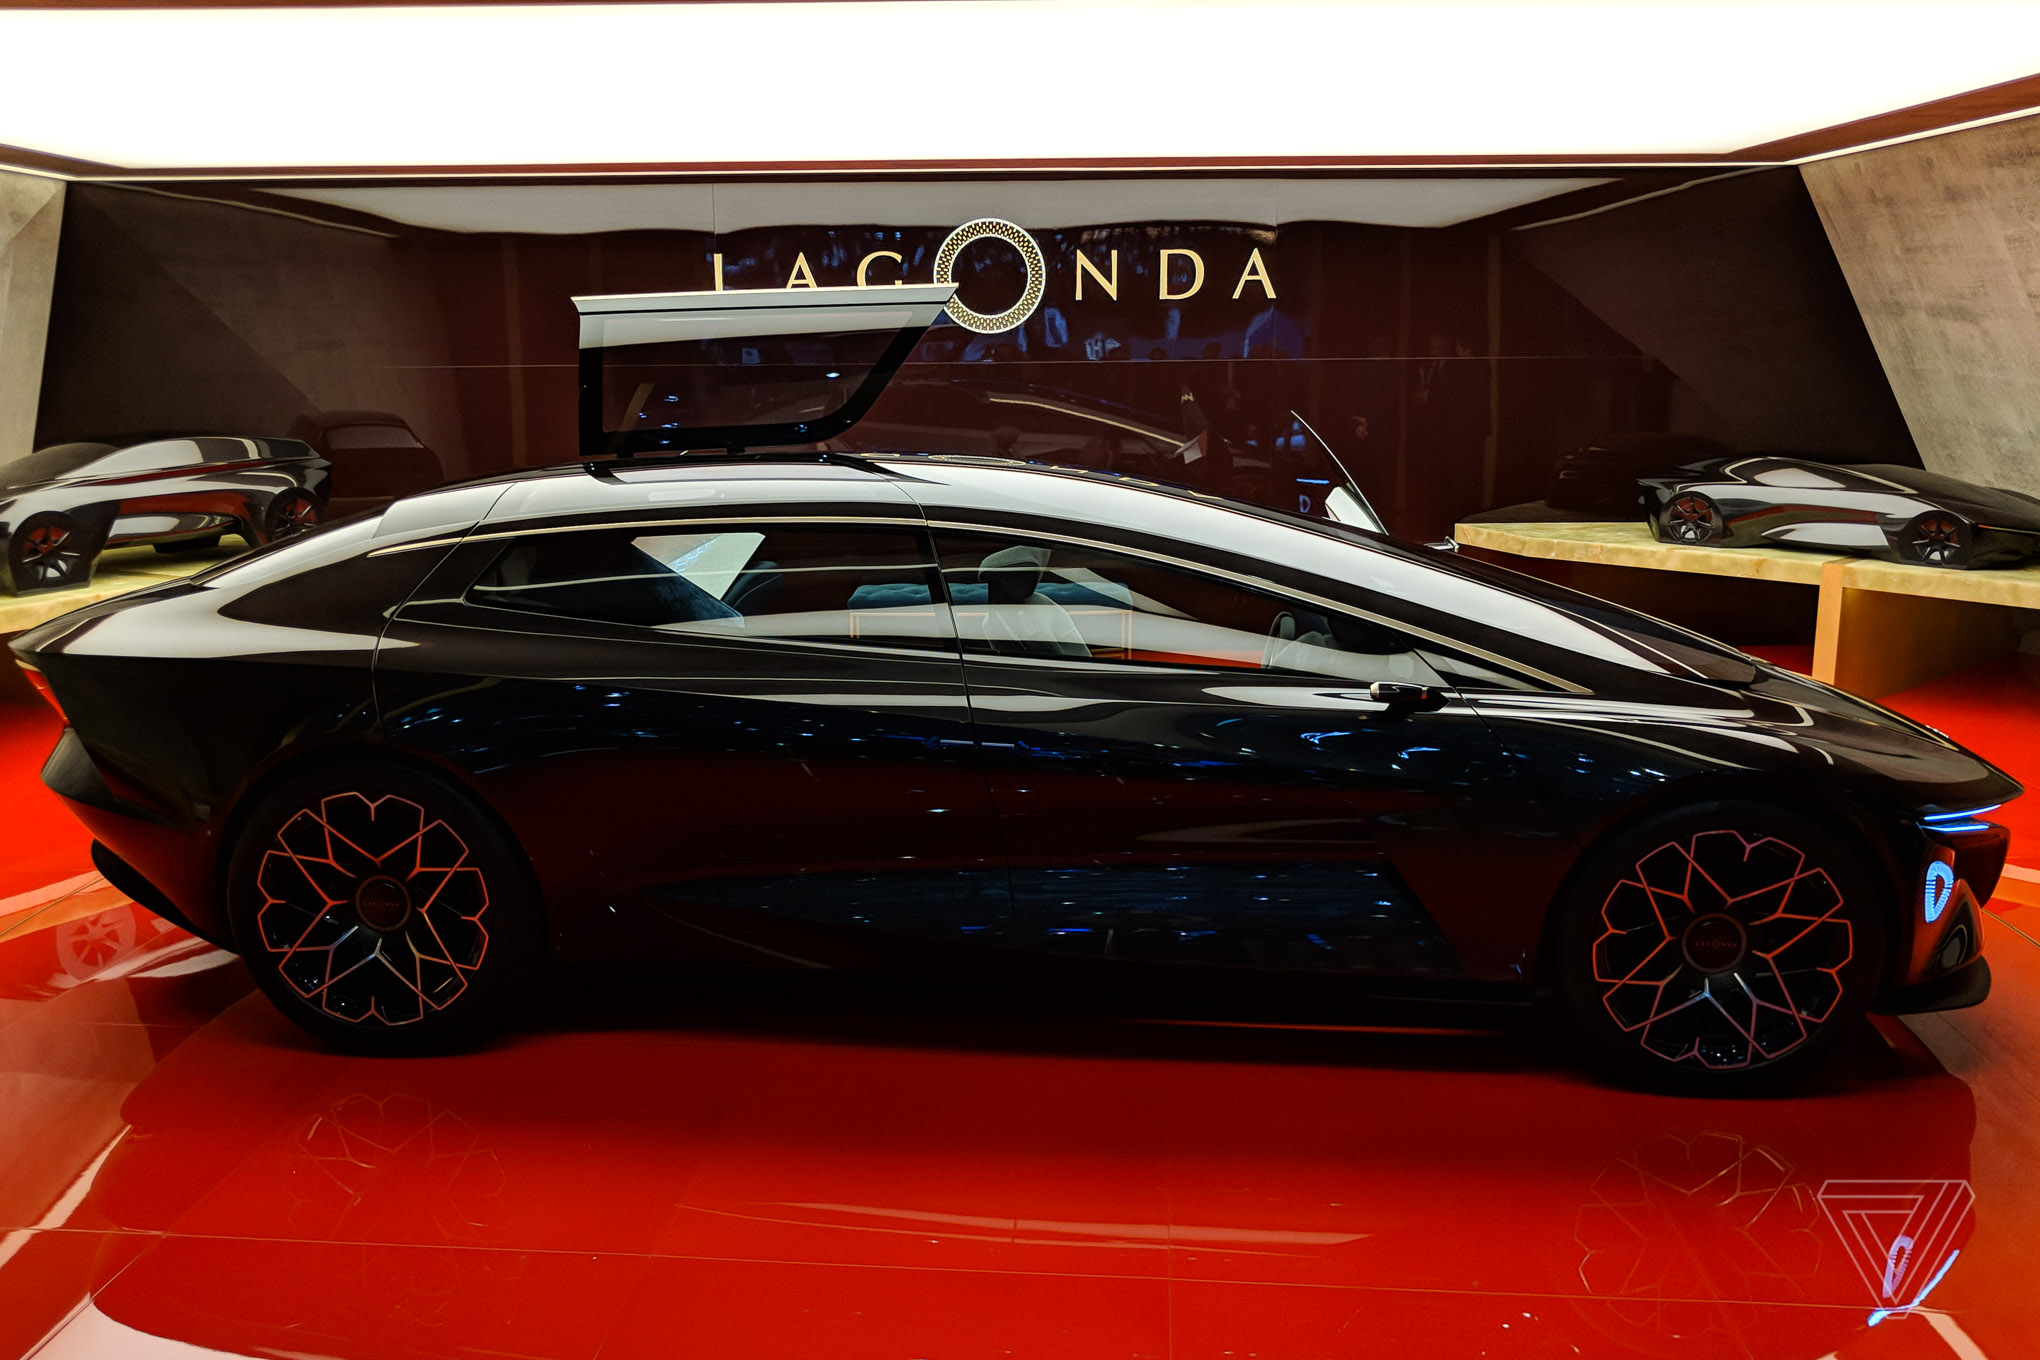 Aston Martin S Lagonda Concept Car Is Breathtaking The Verge